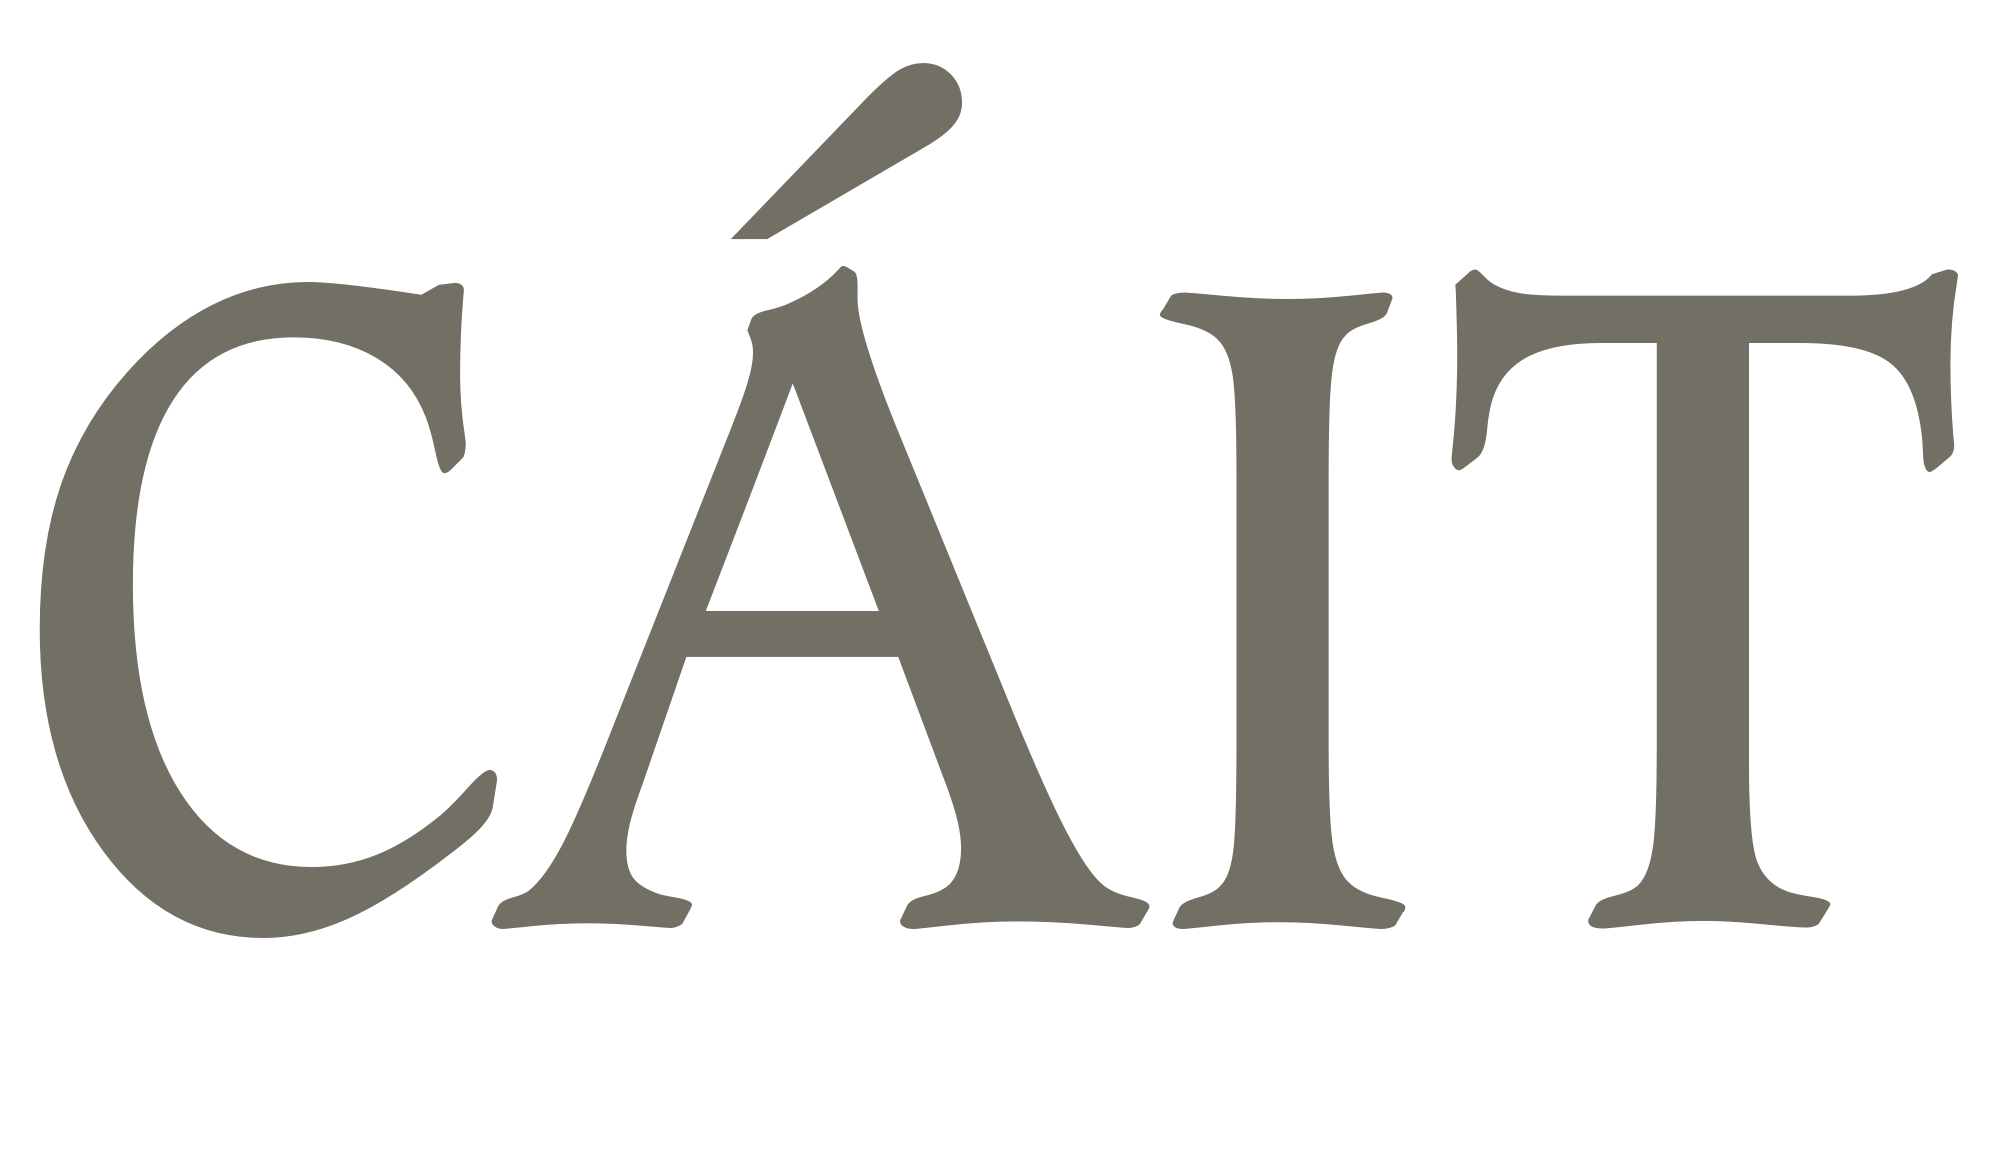 CÁit - Name's Meaning of CÁit (Cait)